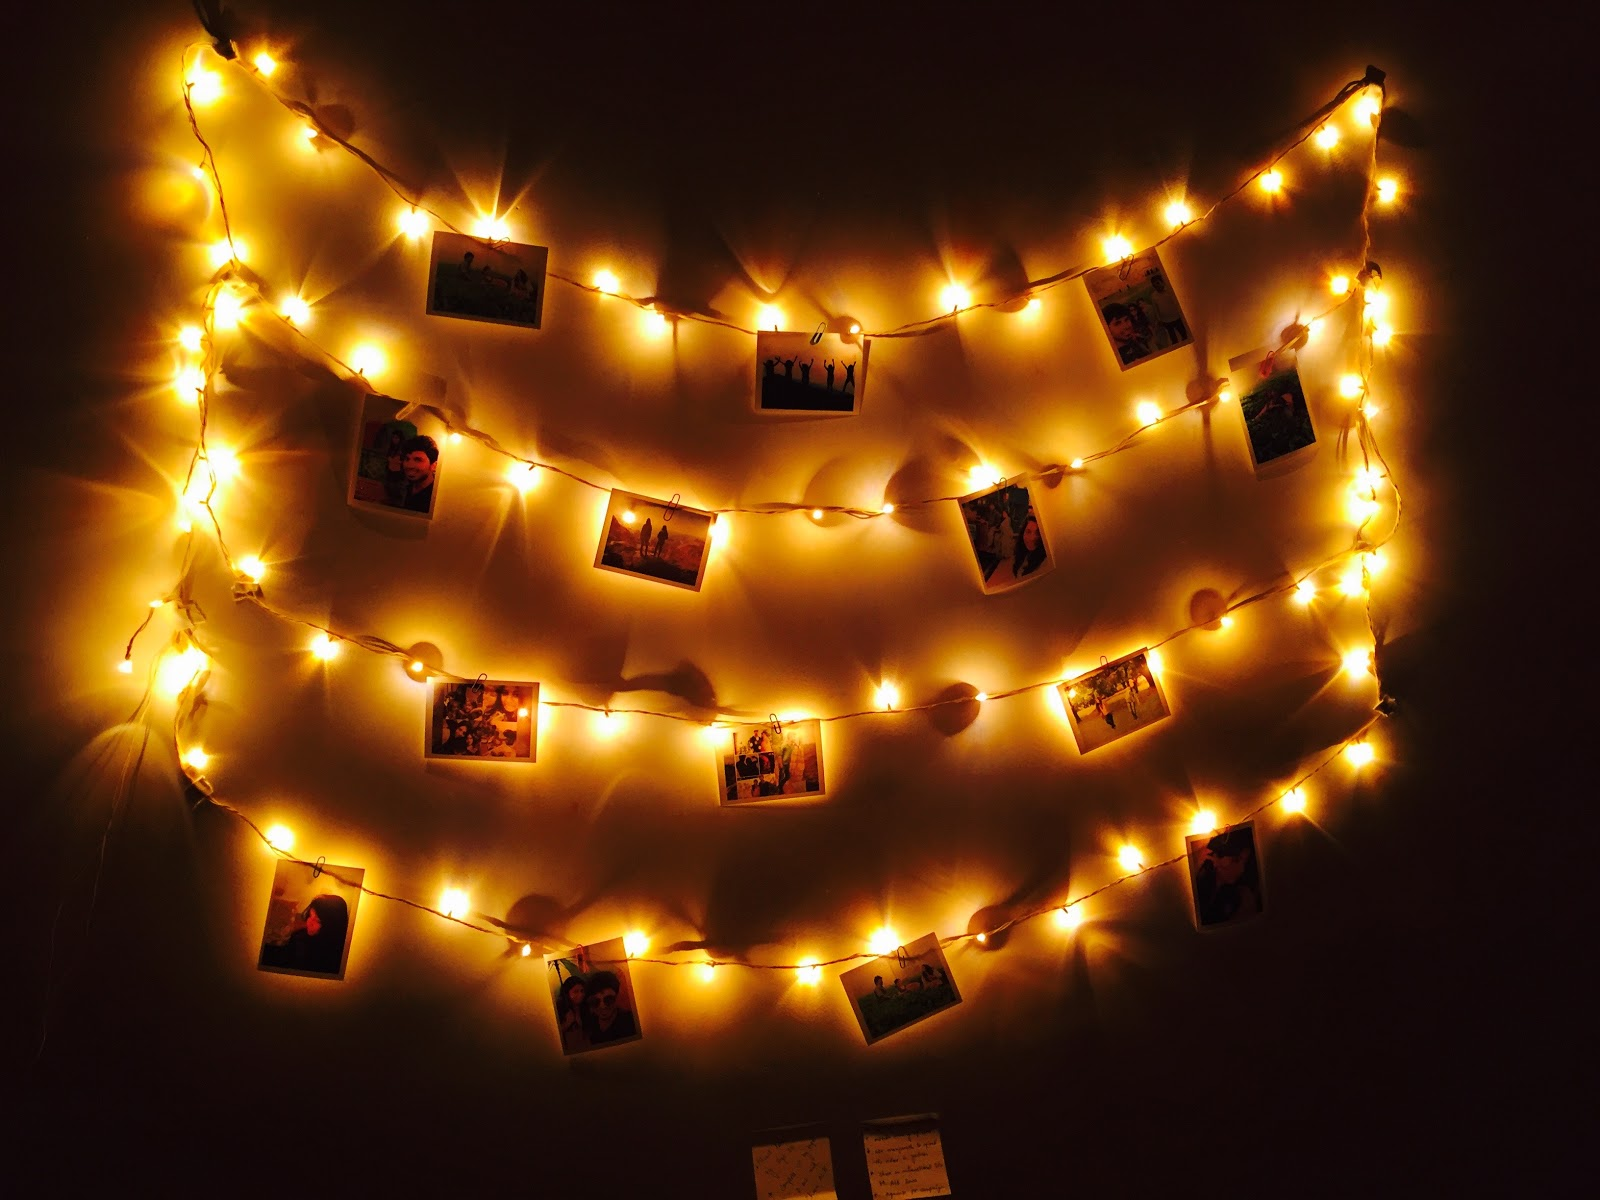 rows of string lights with photos